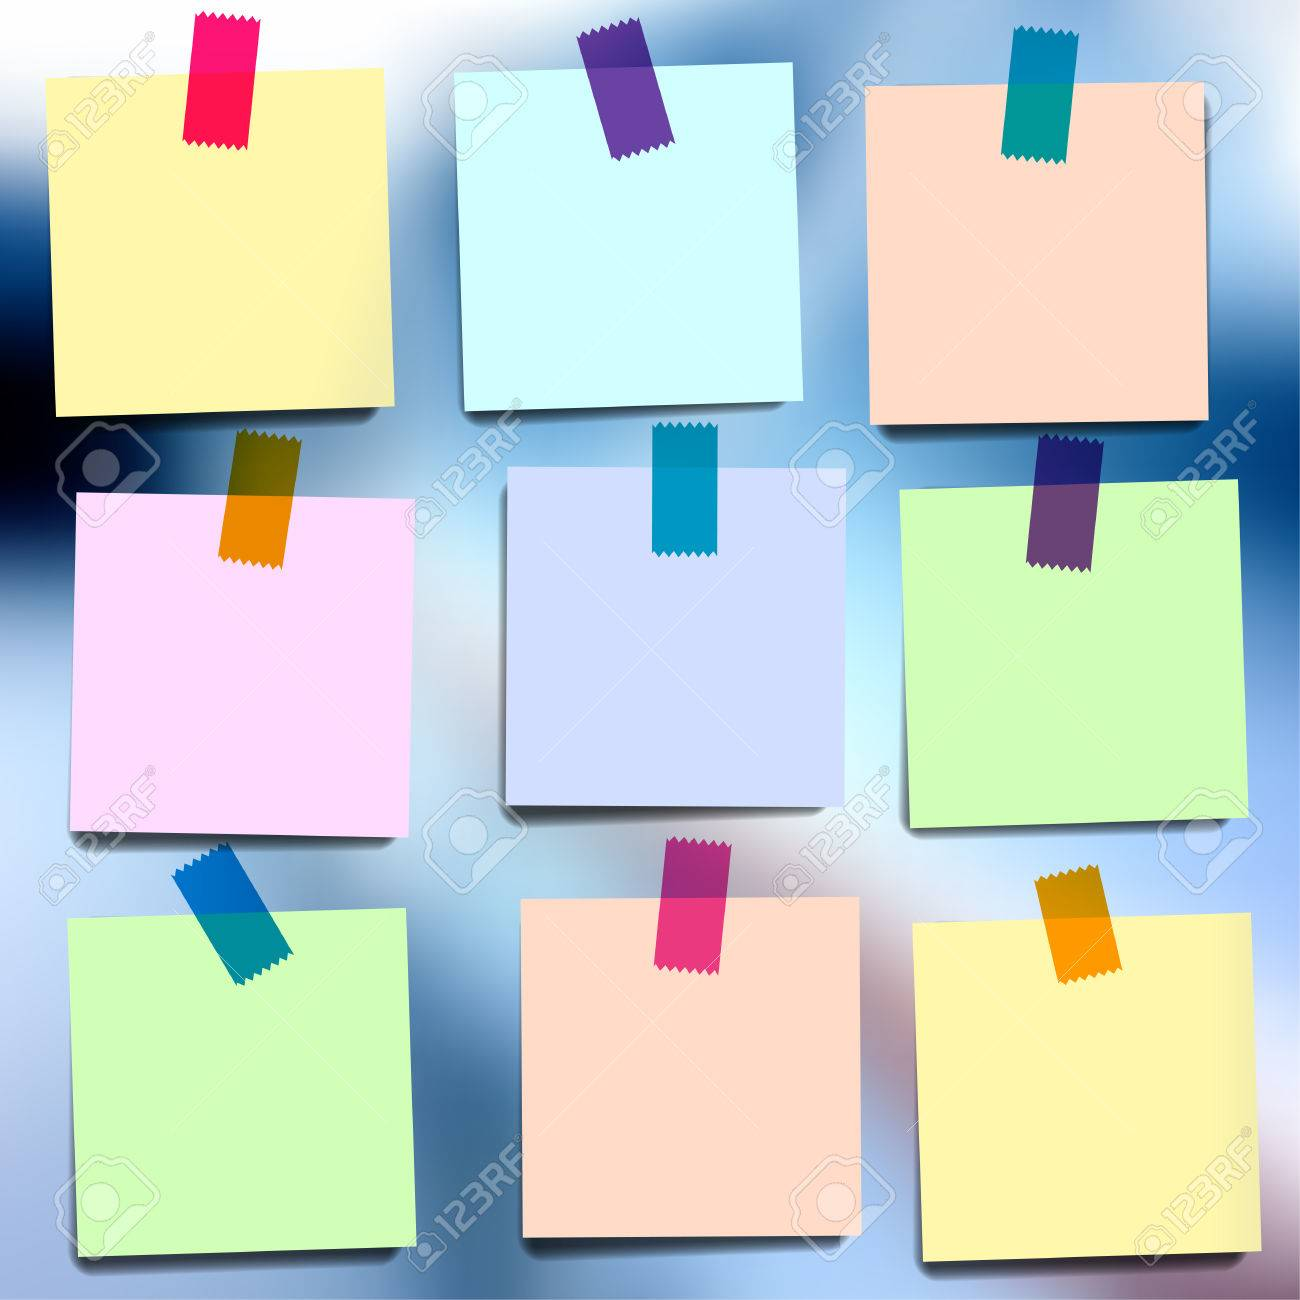 Sticky notes wallpapers on blurred vector background Stock Vector - 40380476